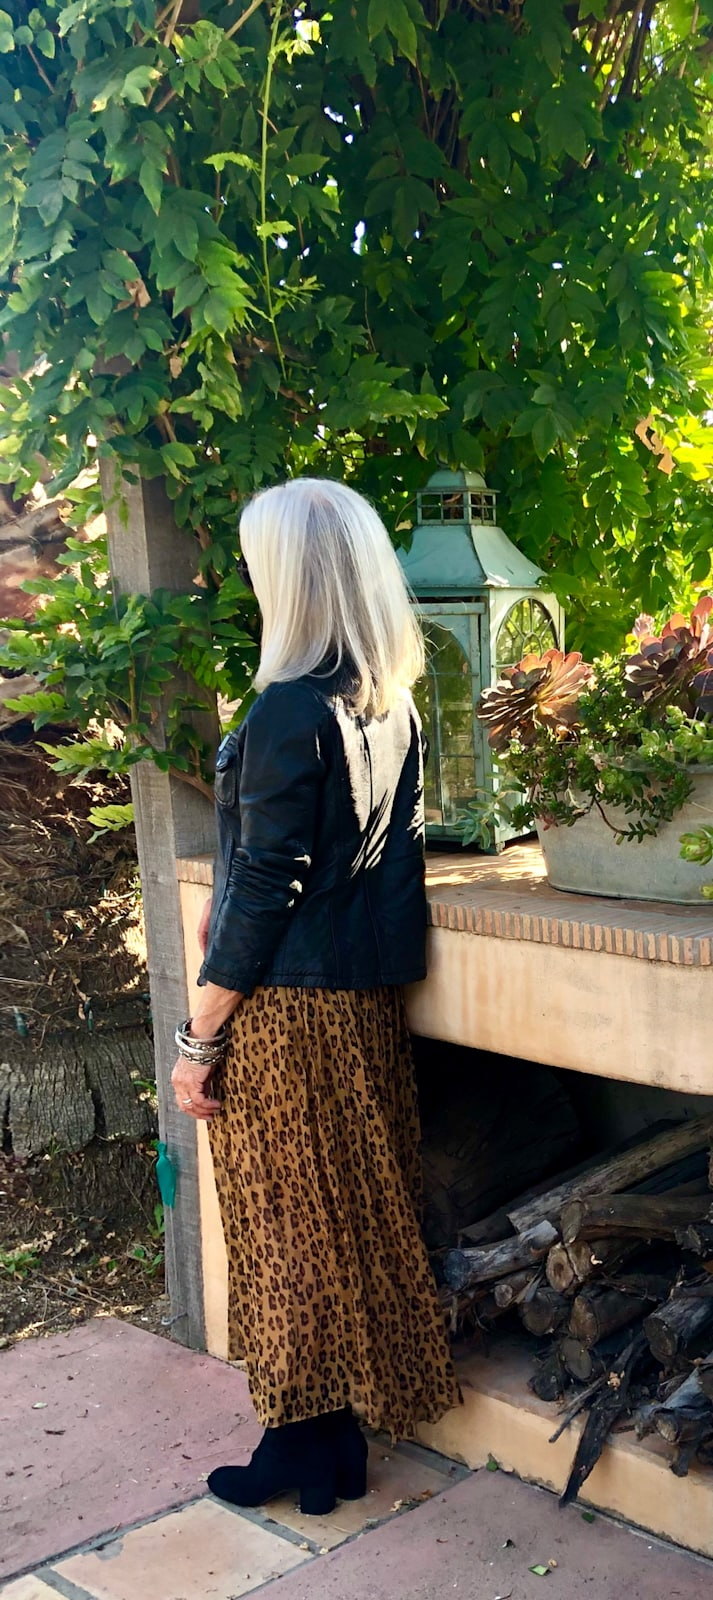 cindy hattersley in free people leopard skirt and leather jacket